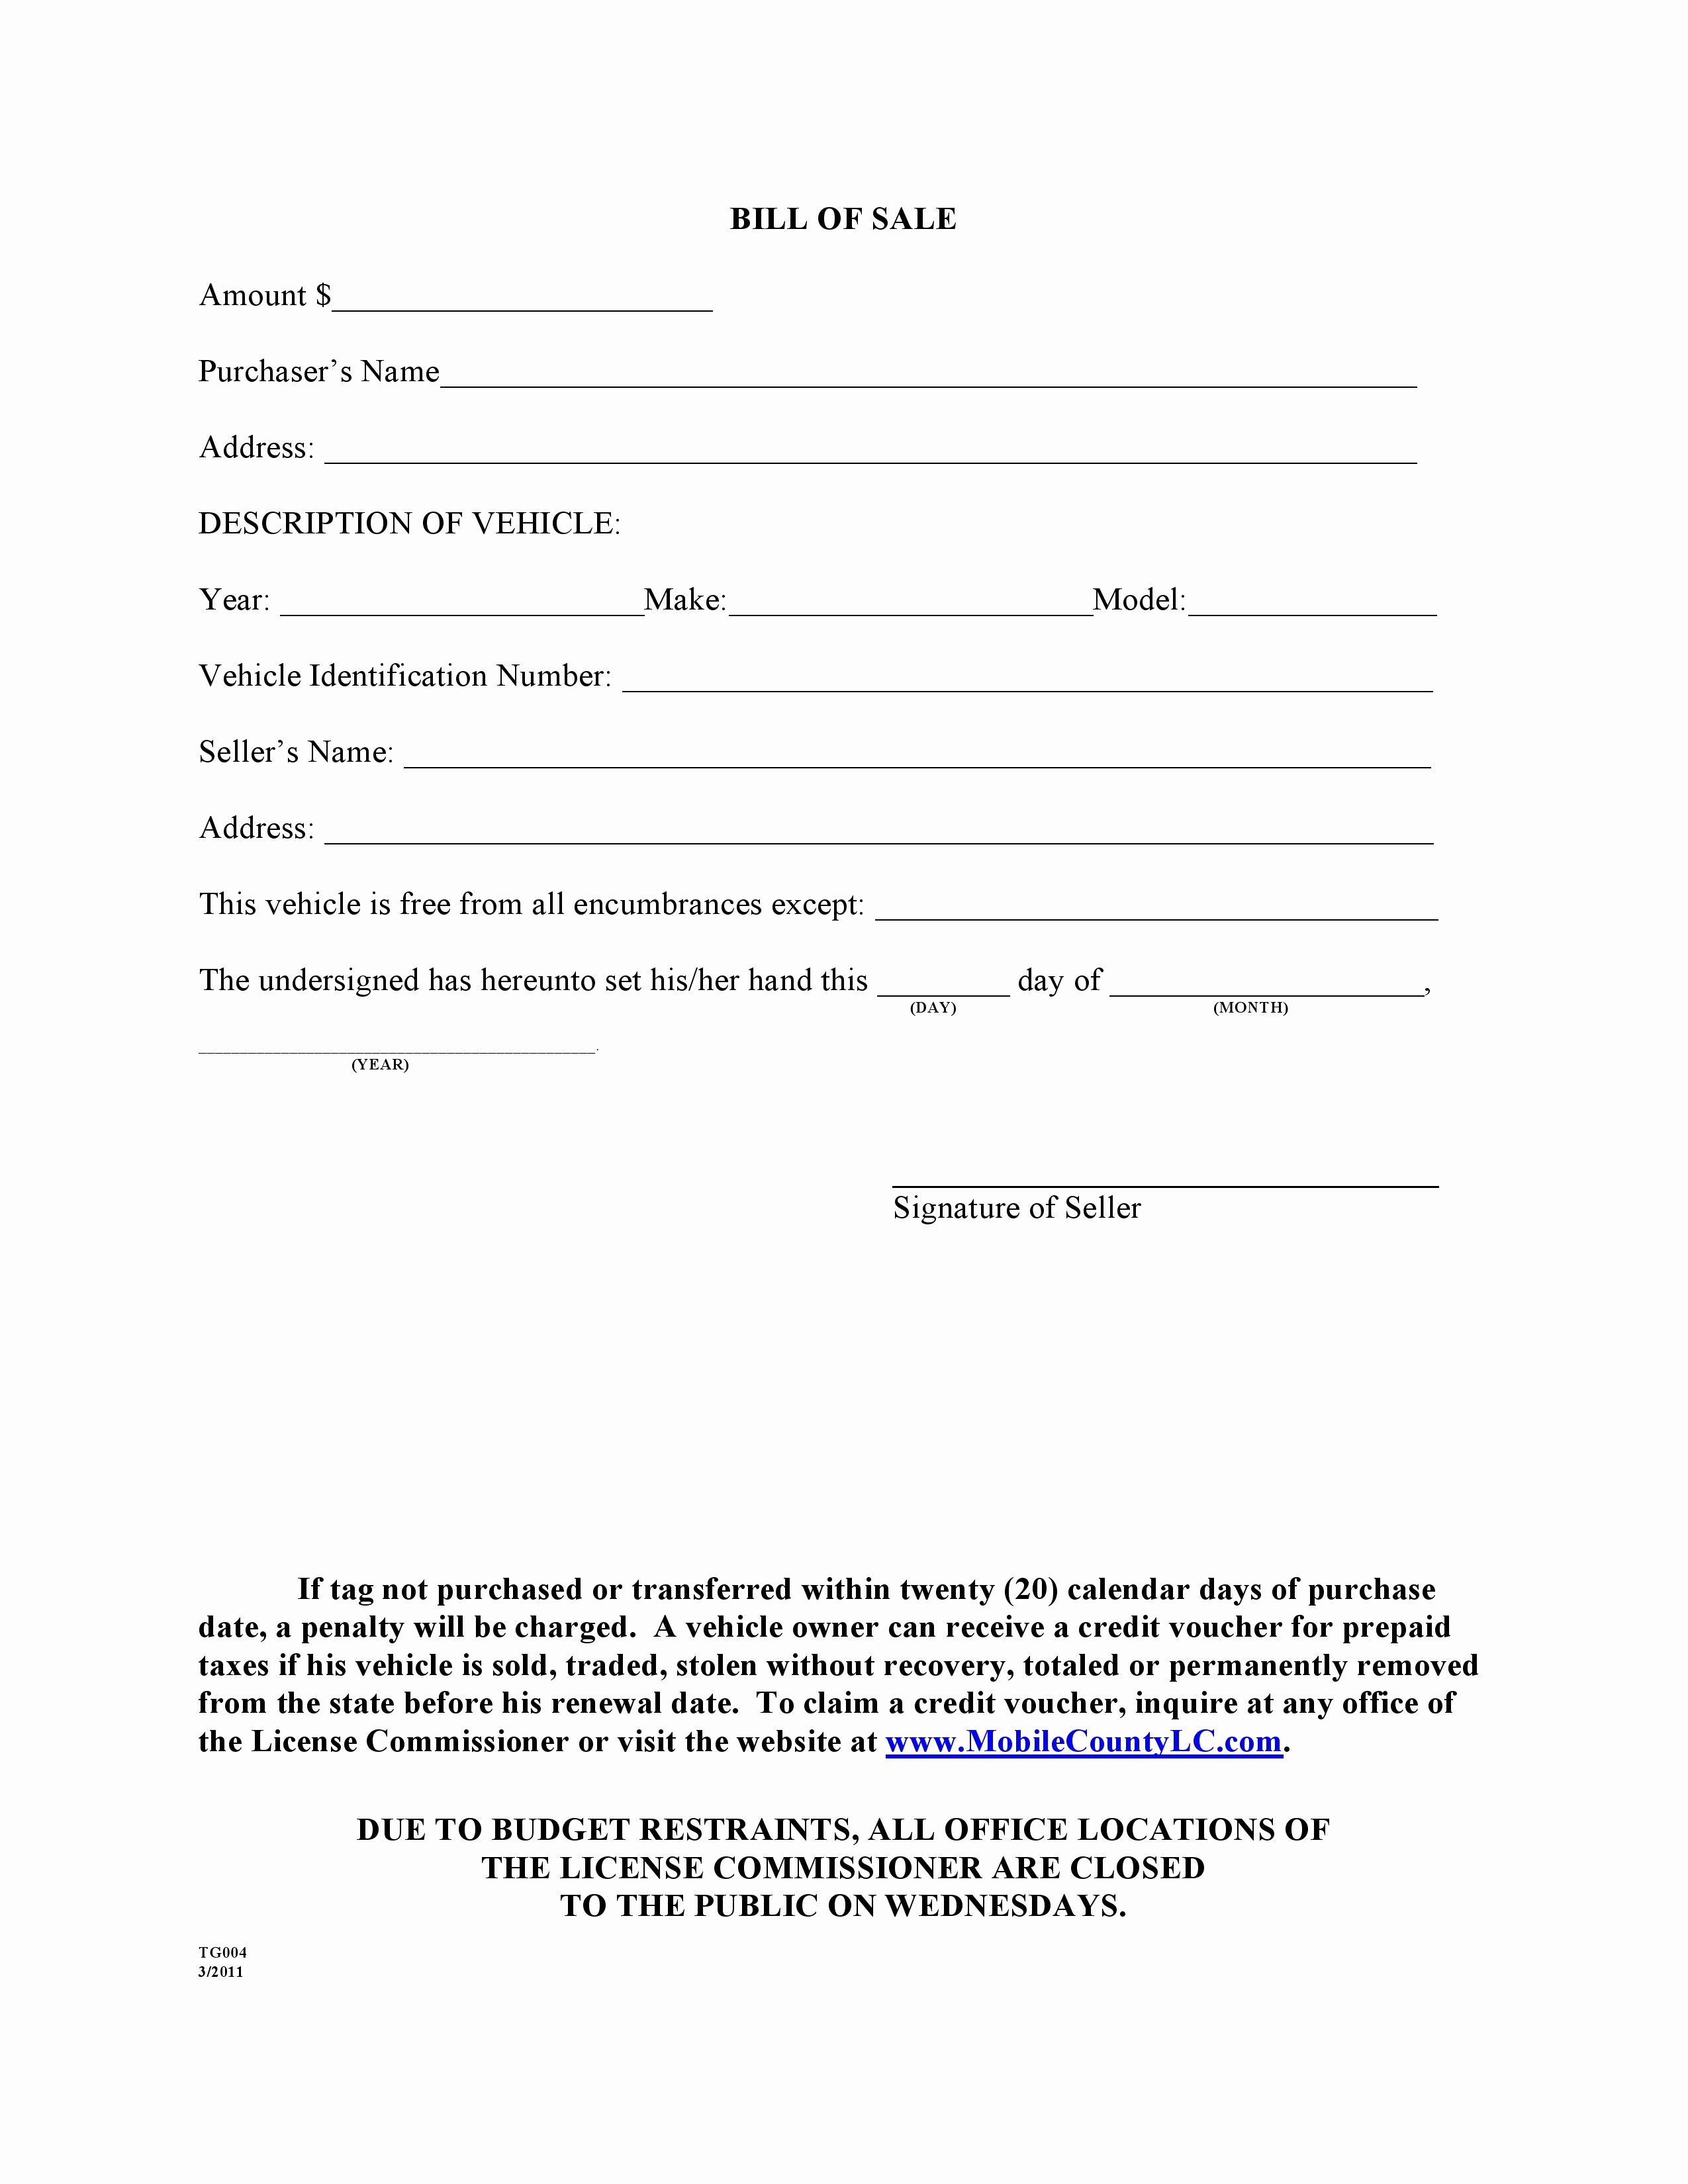 Format for Bill Of Sale New Free Mobile County Alabama Bill Of Sale form Pdf